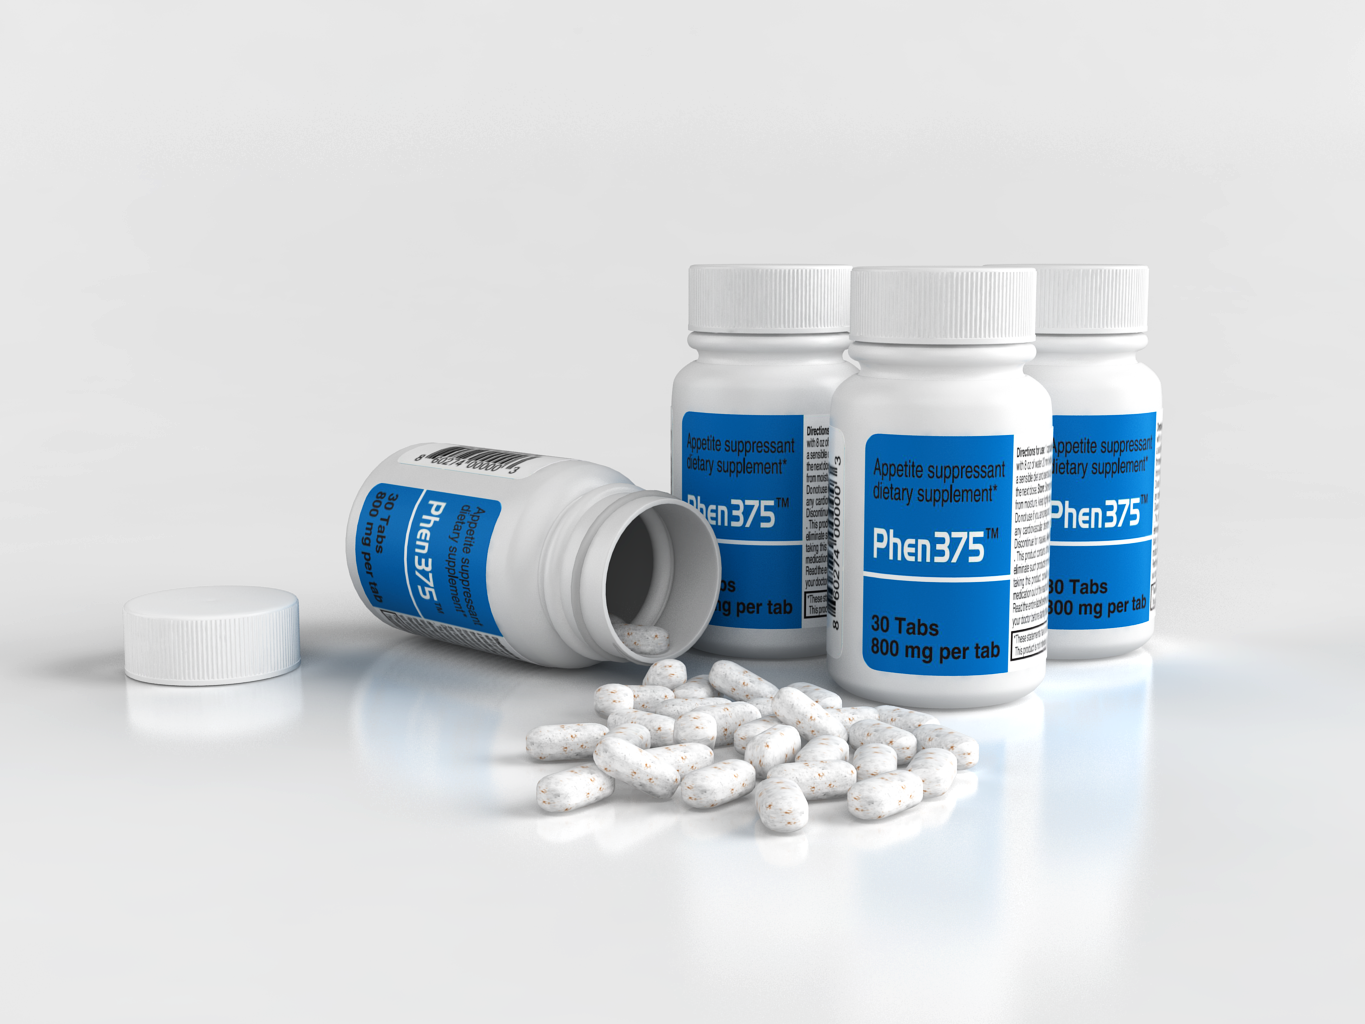 Medical weight loss pills - What are the healthy and effective